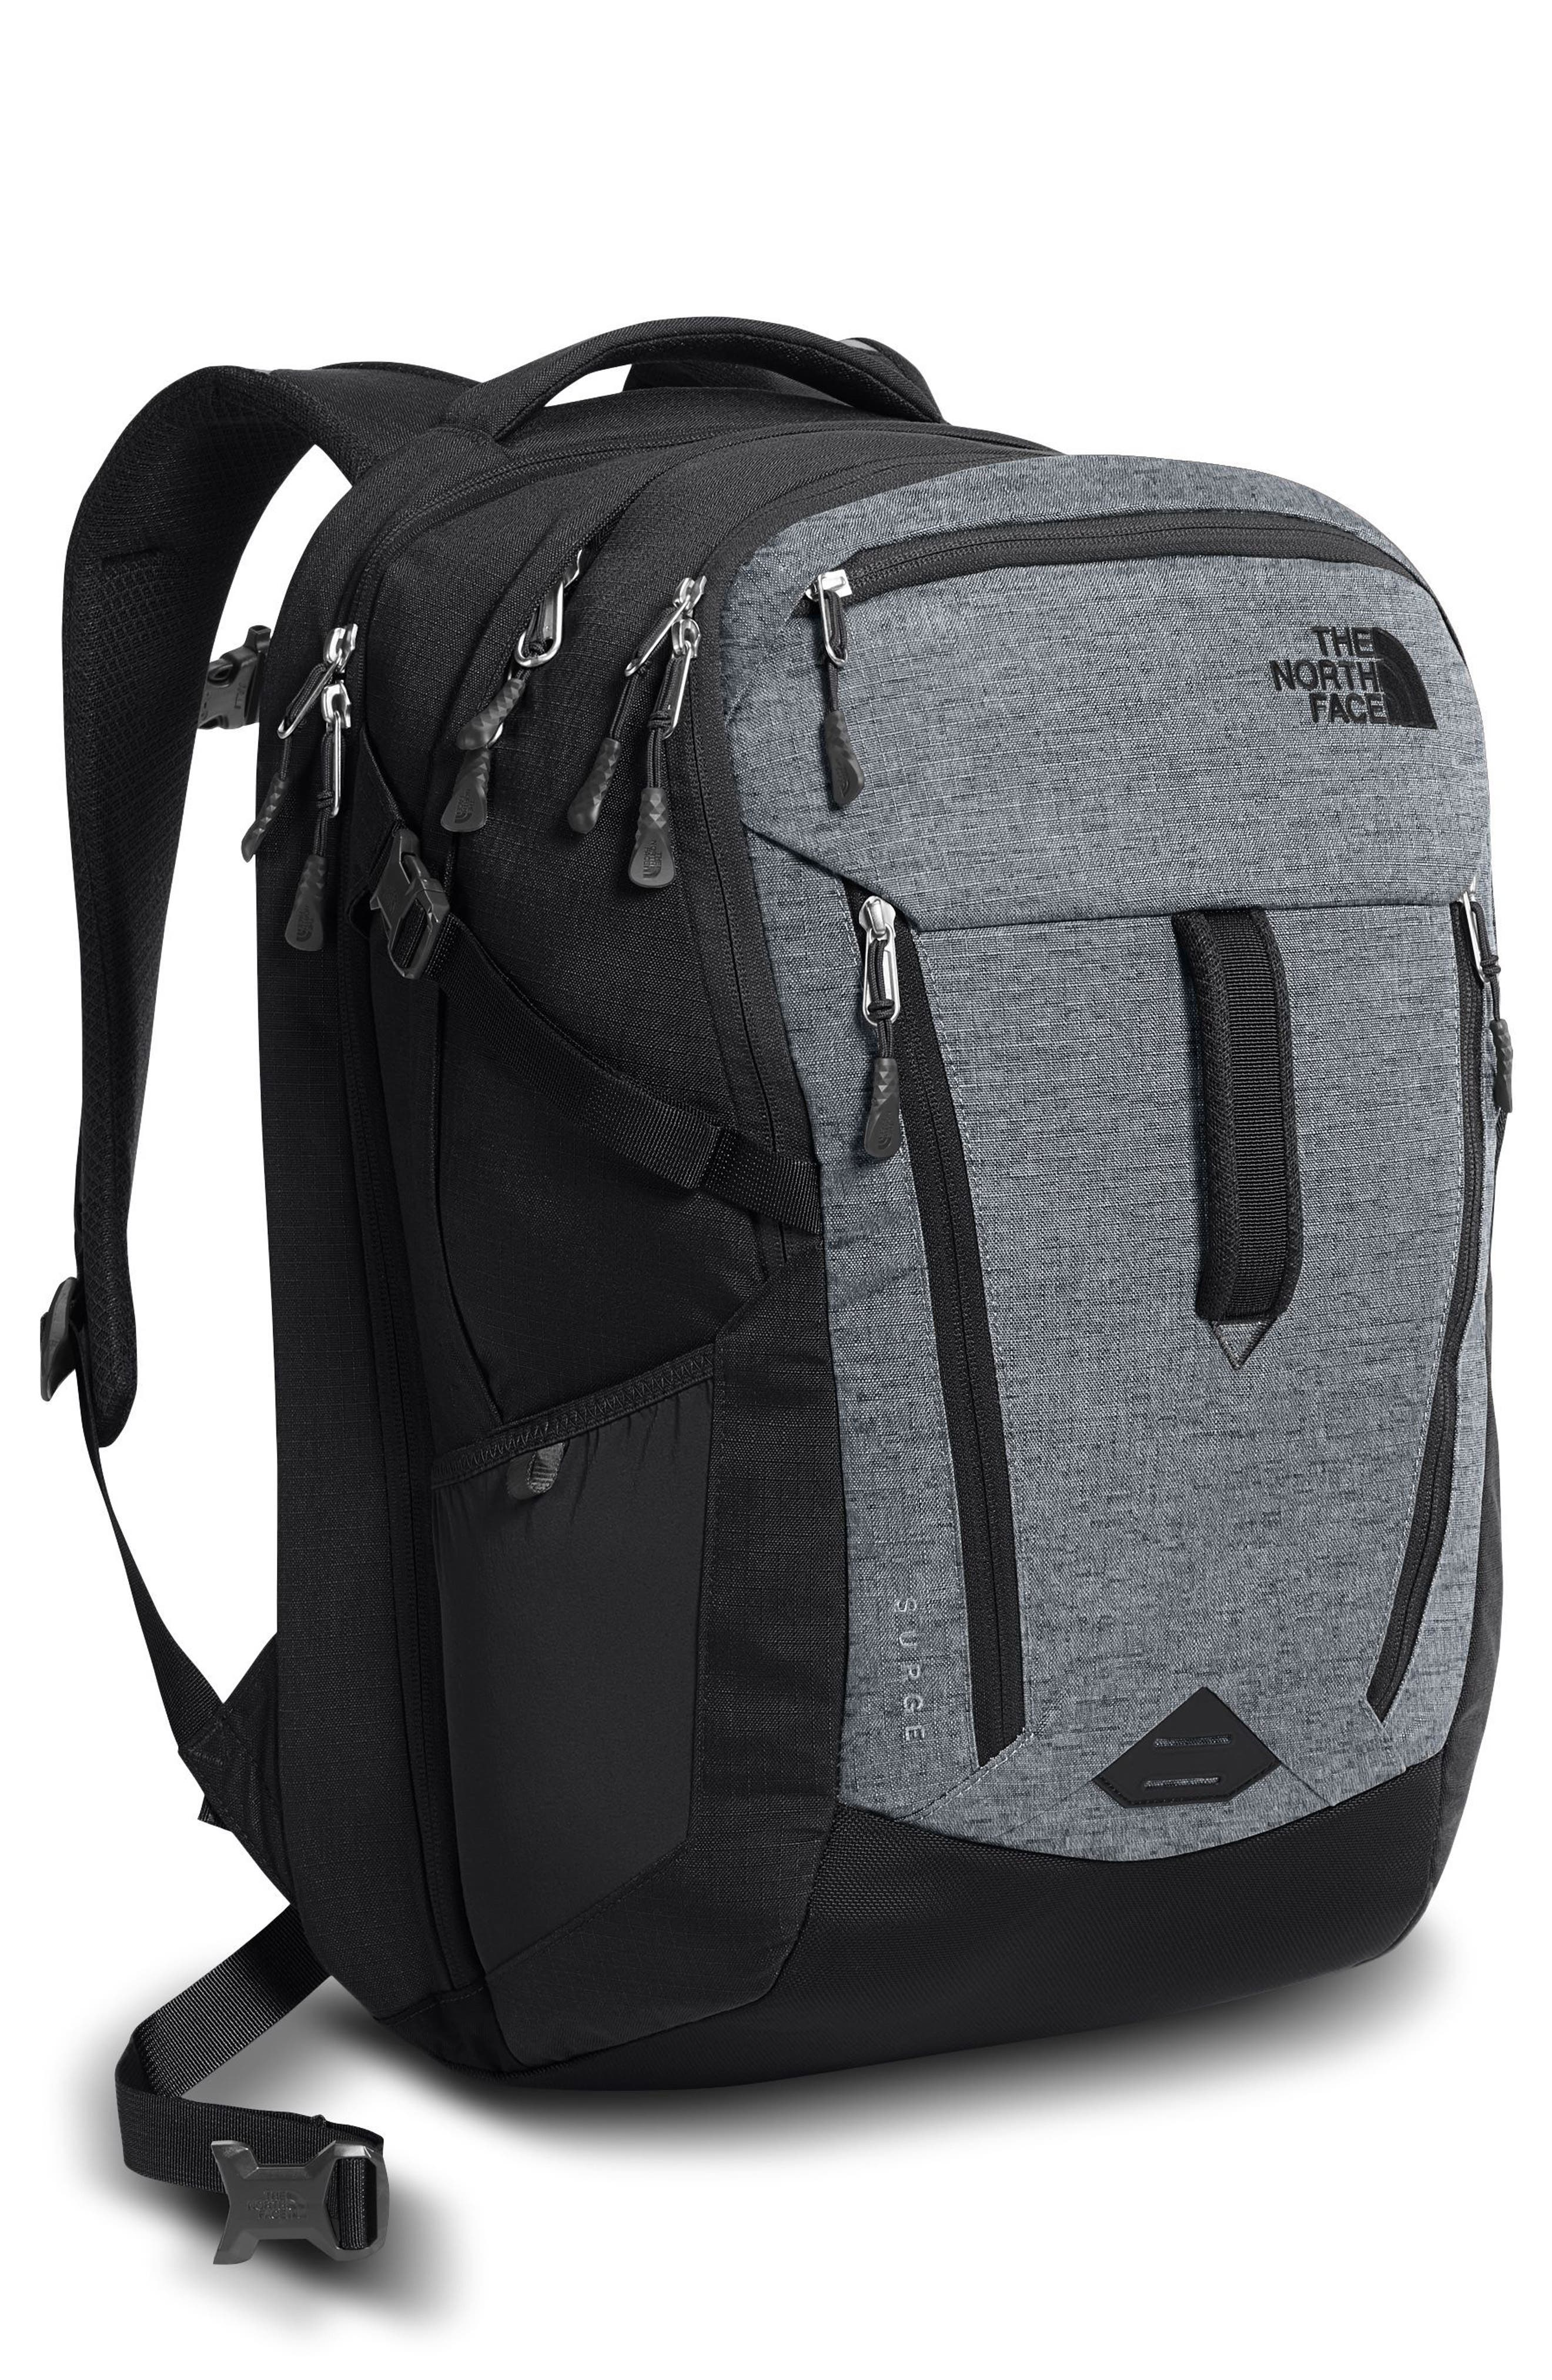 The North Face  'SURGE' BACKPACK - GREY